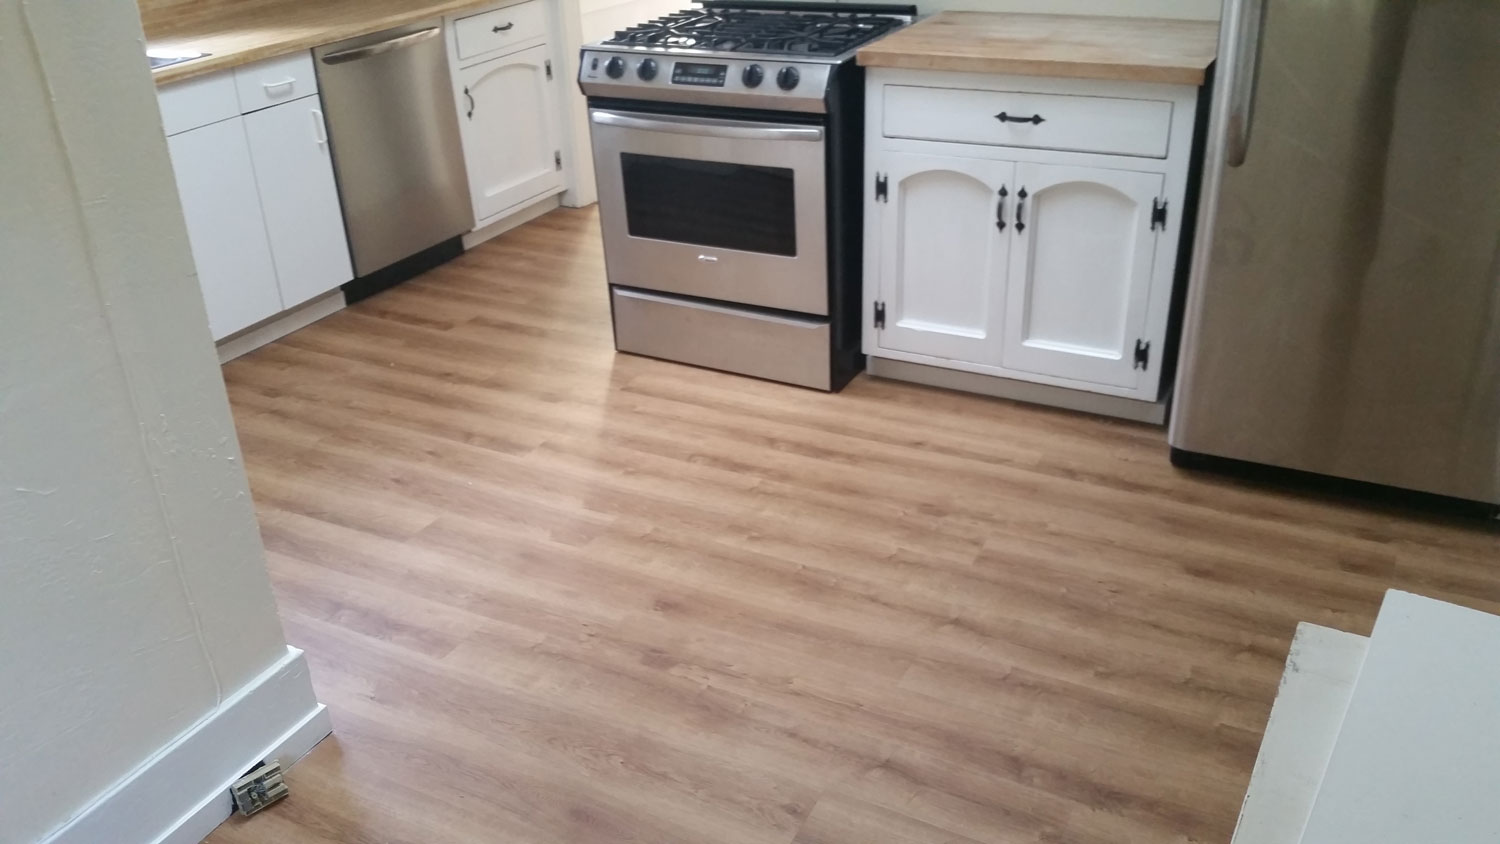 Water-proof LVT (luxury vinyl tile) installed over<br/>  dated linoleum floors to: living room, kitchen, laundry<br/> room, dining room. 1835 square feet total — Palo Alto.